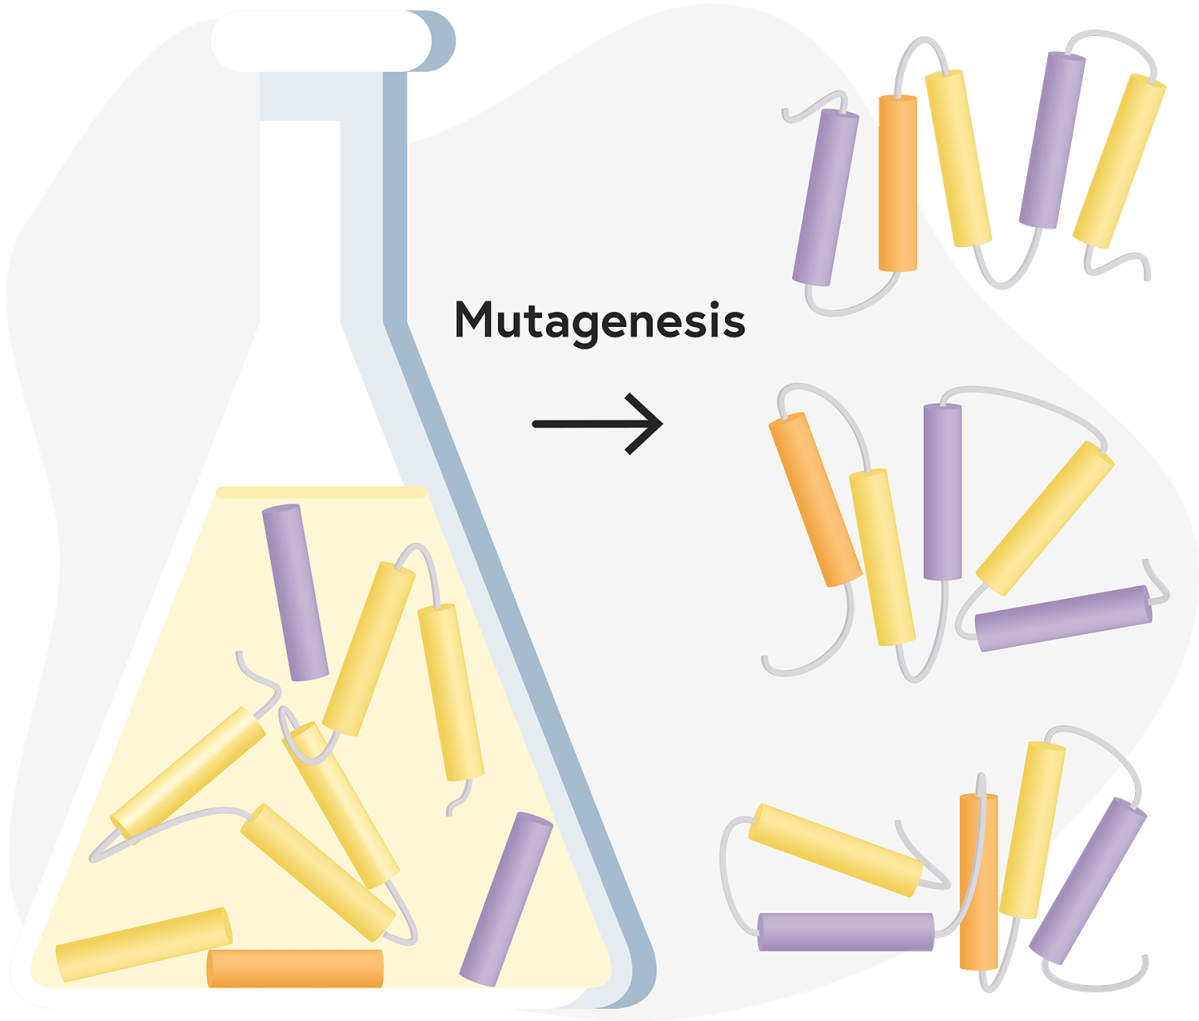 This illustration visually represents mutagenesis.